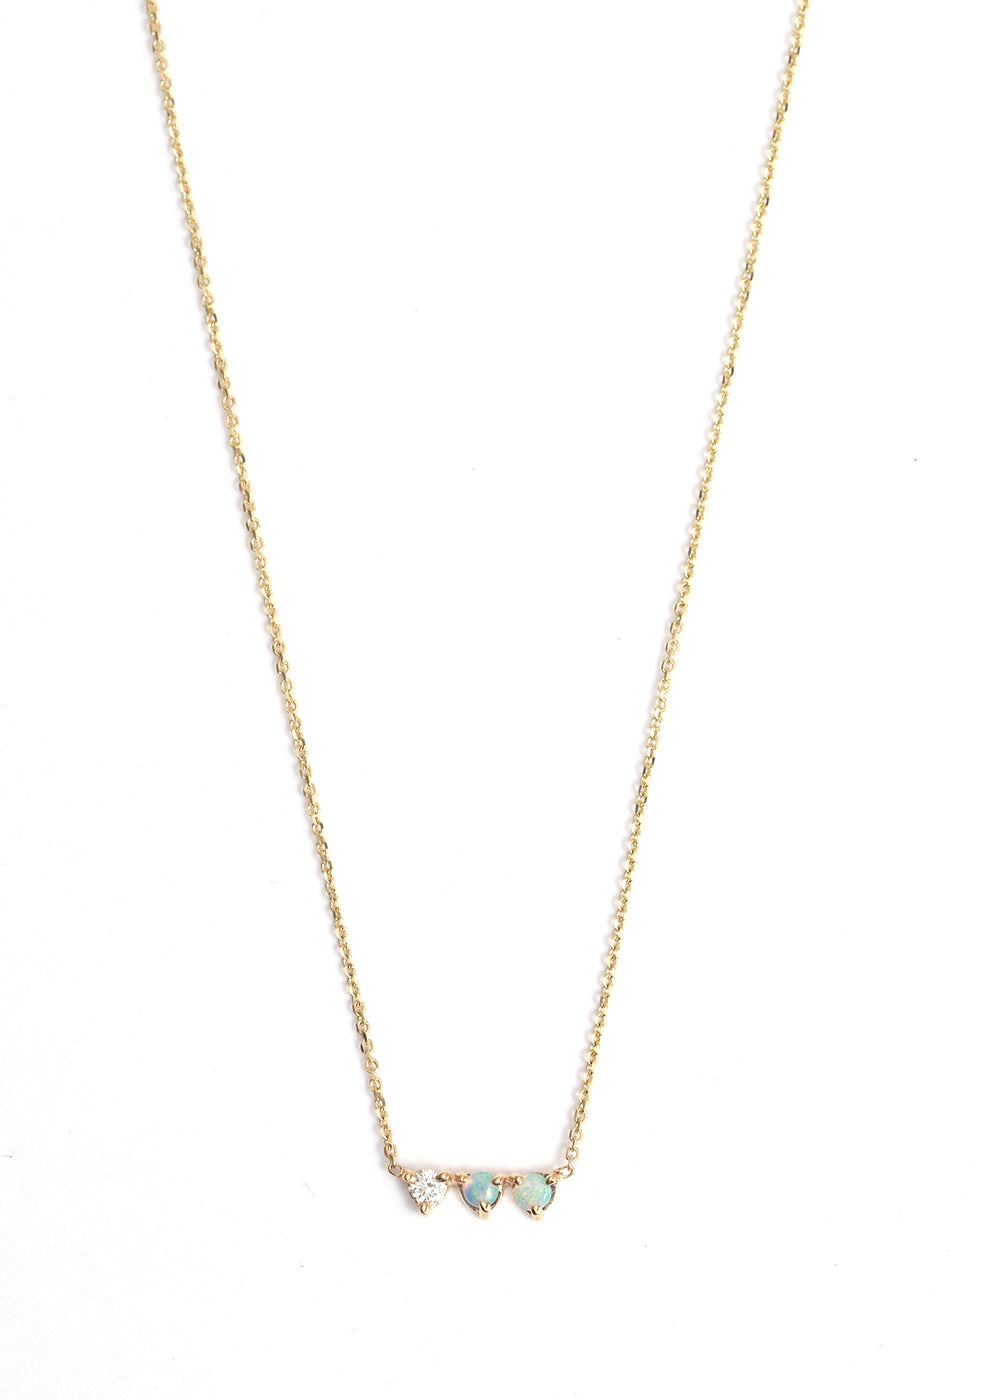 Opal and Diamond Three Points Necklace - Melissa Joy Manning Jewelry